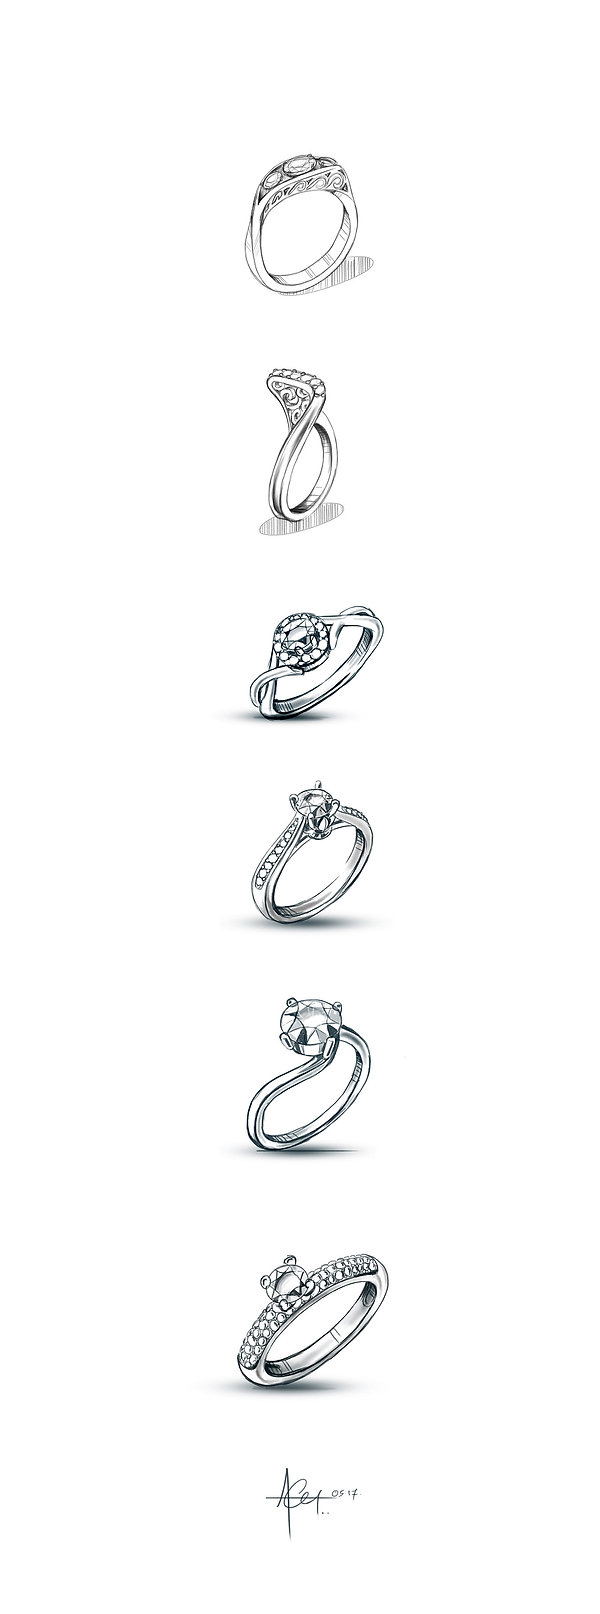 Soloitaire Rings